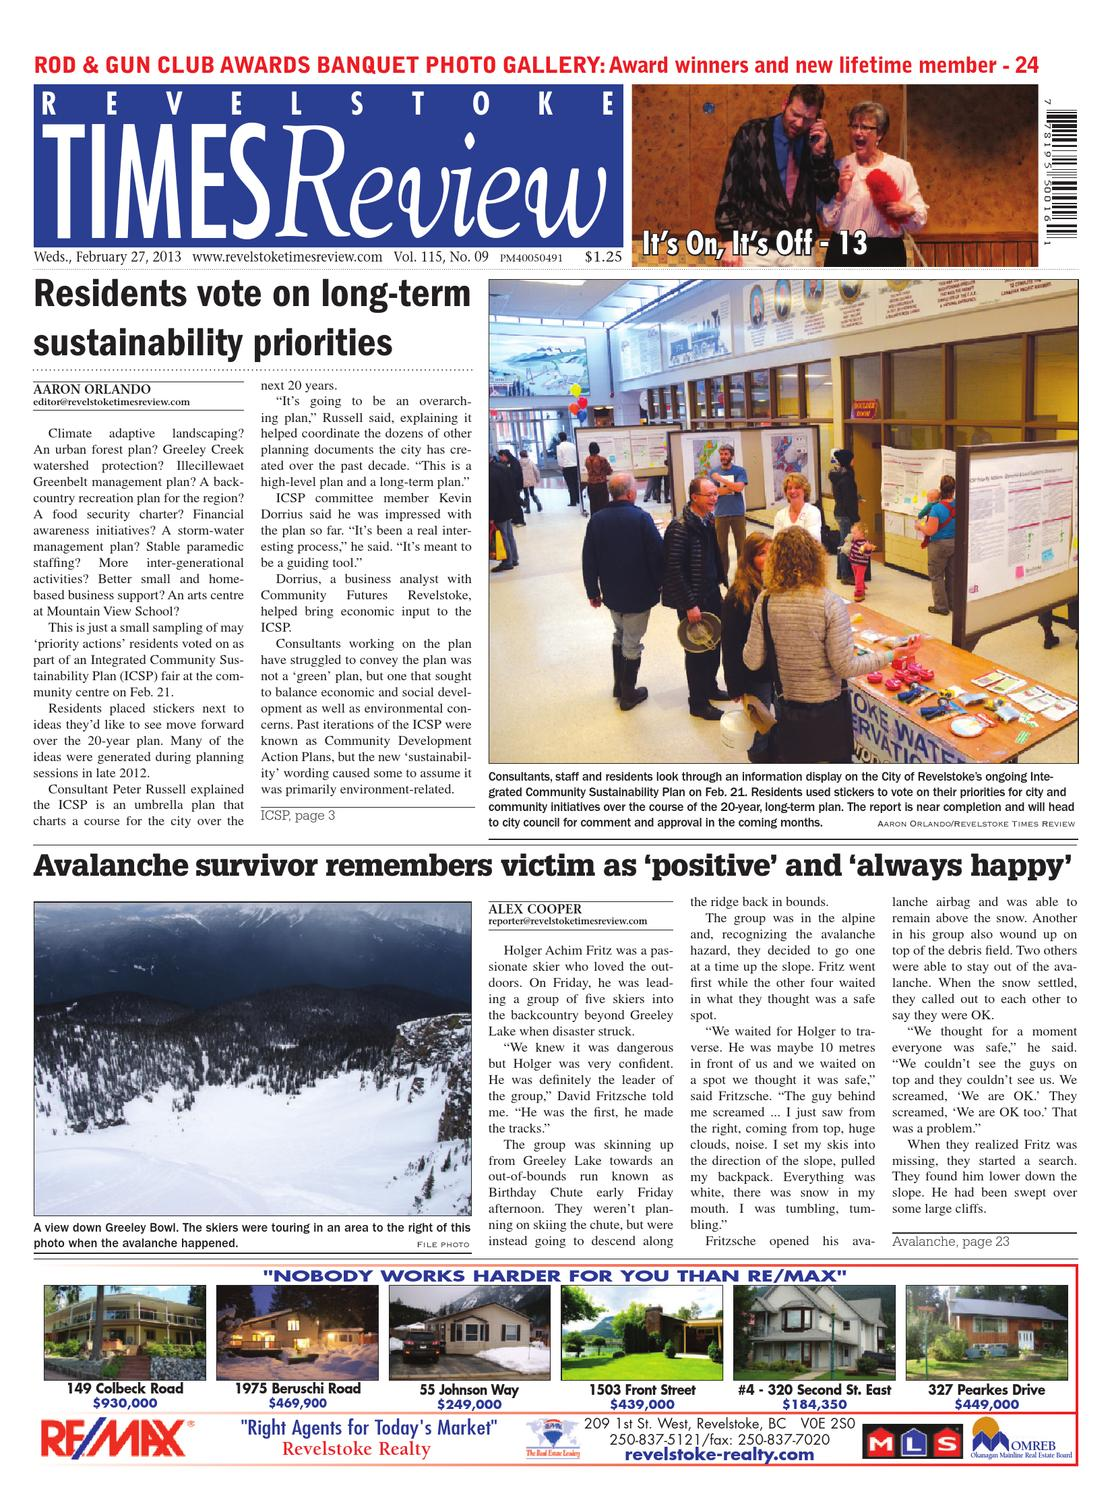 Revelstoke Times Review, February 27, 2013 by Black Press